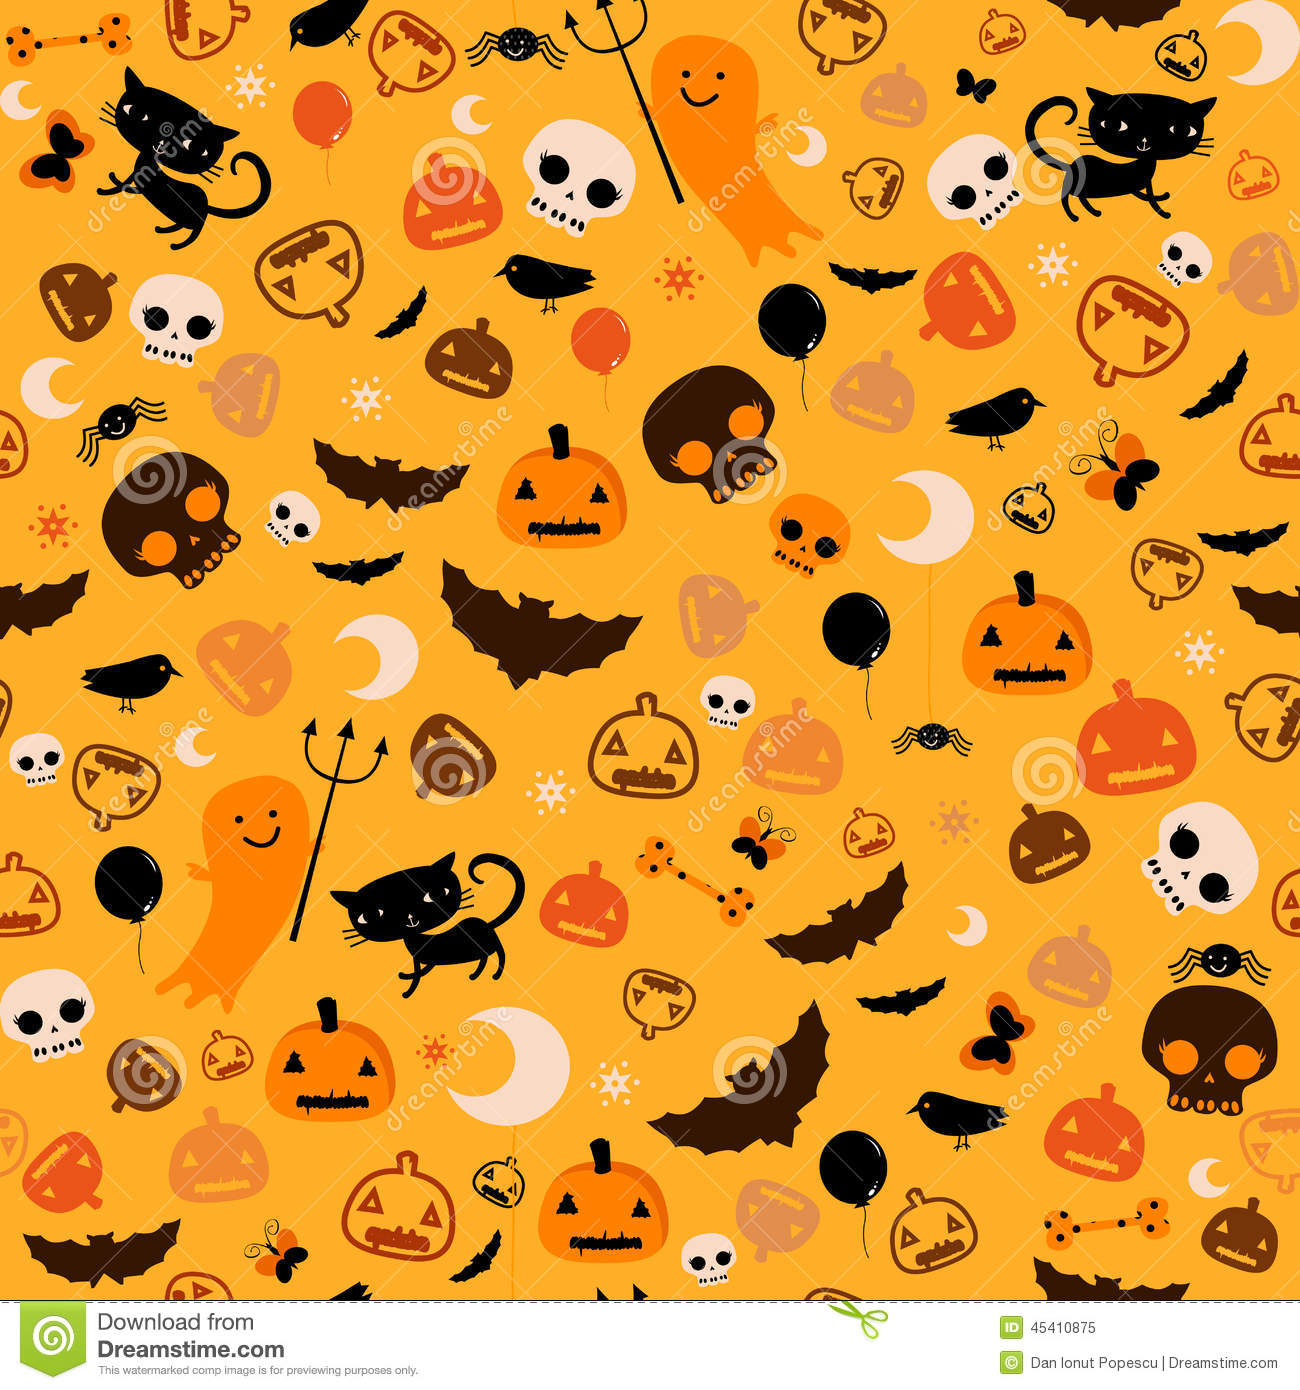 Halloween background stock vector. Image of animal, illustration ...